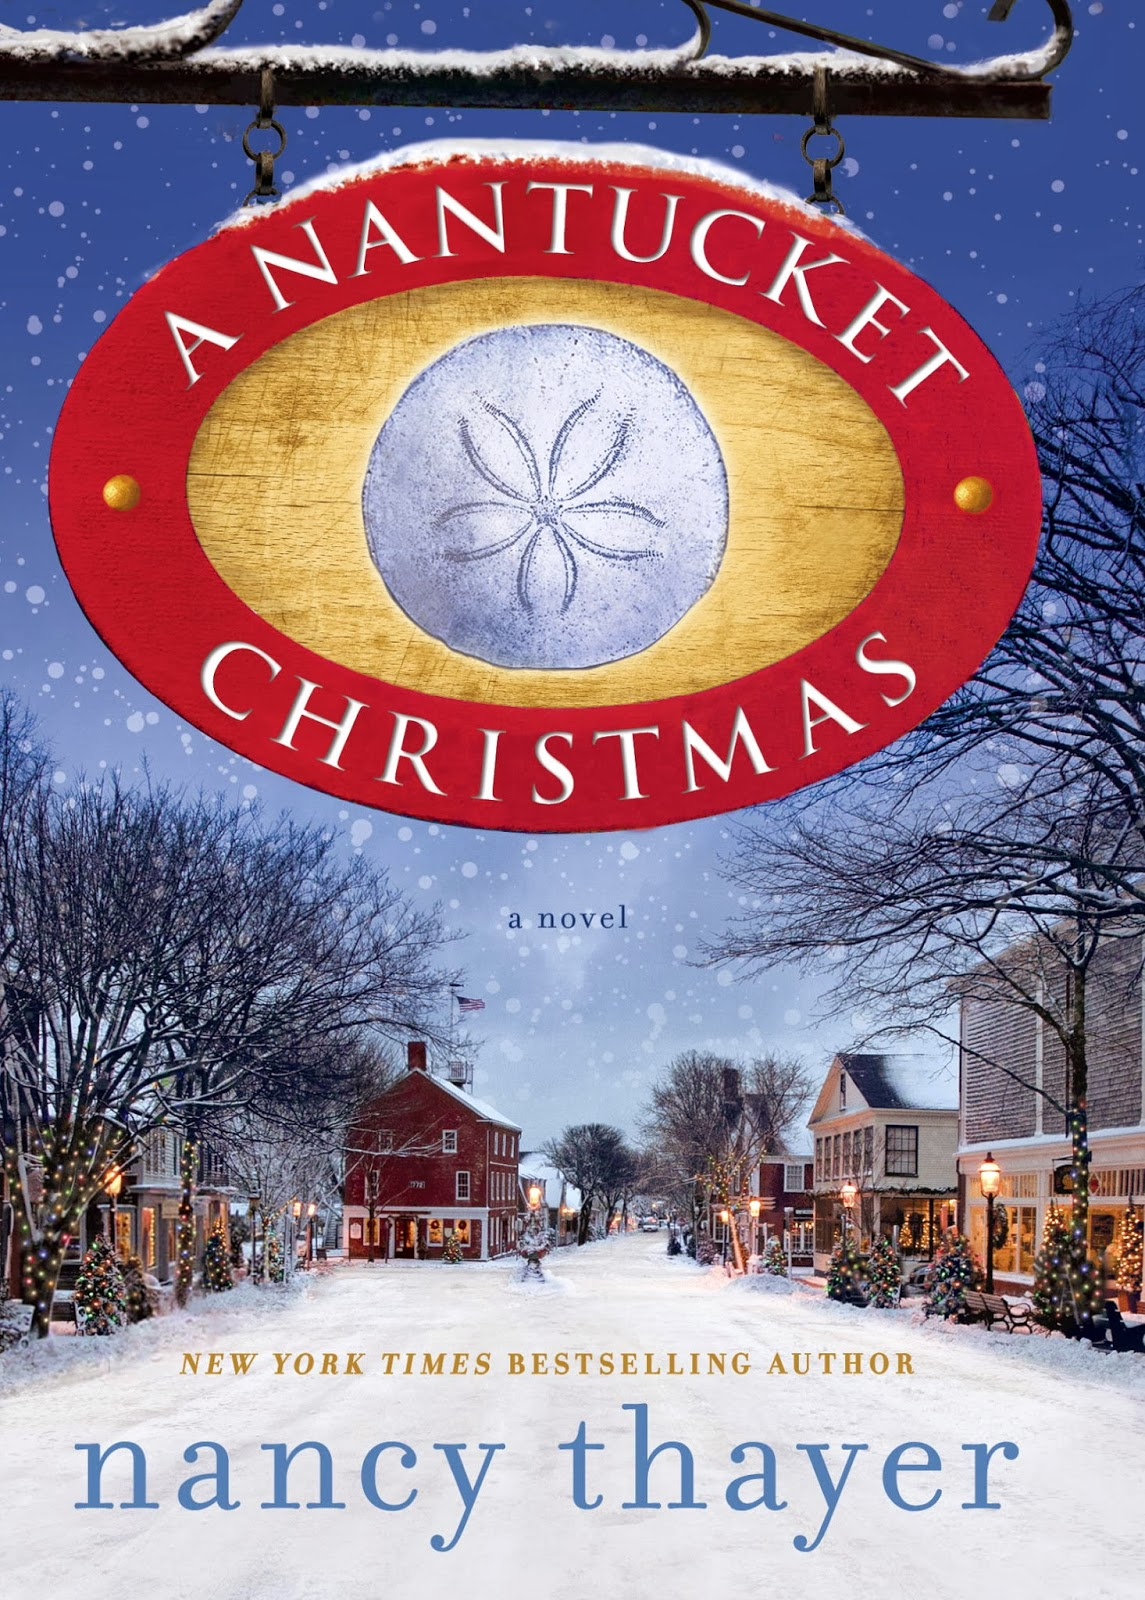 Bibliophile by the sea a nantucket christmas nancy thayer for Nantucket by the sea